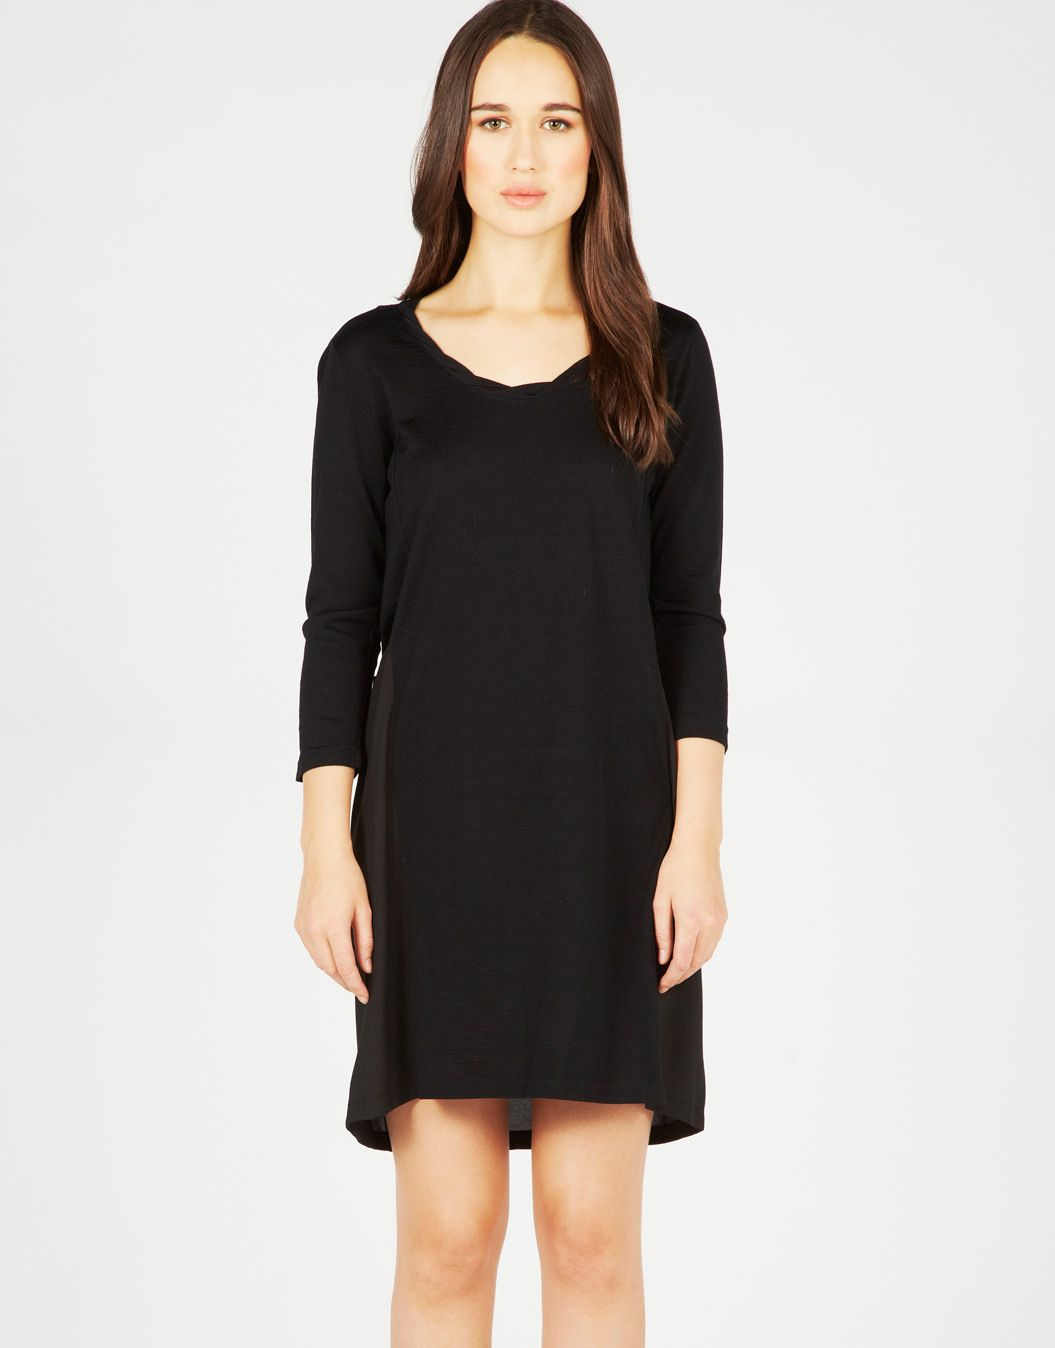 Glassons - Oversized Knit Dress ($79.99) | Fashion clothes ...